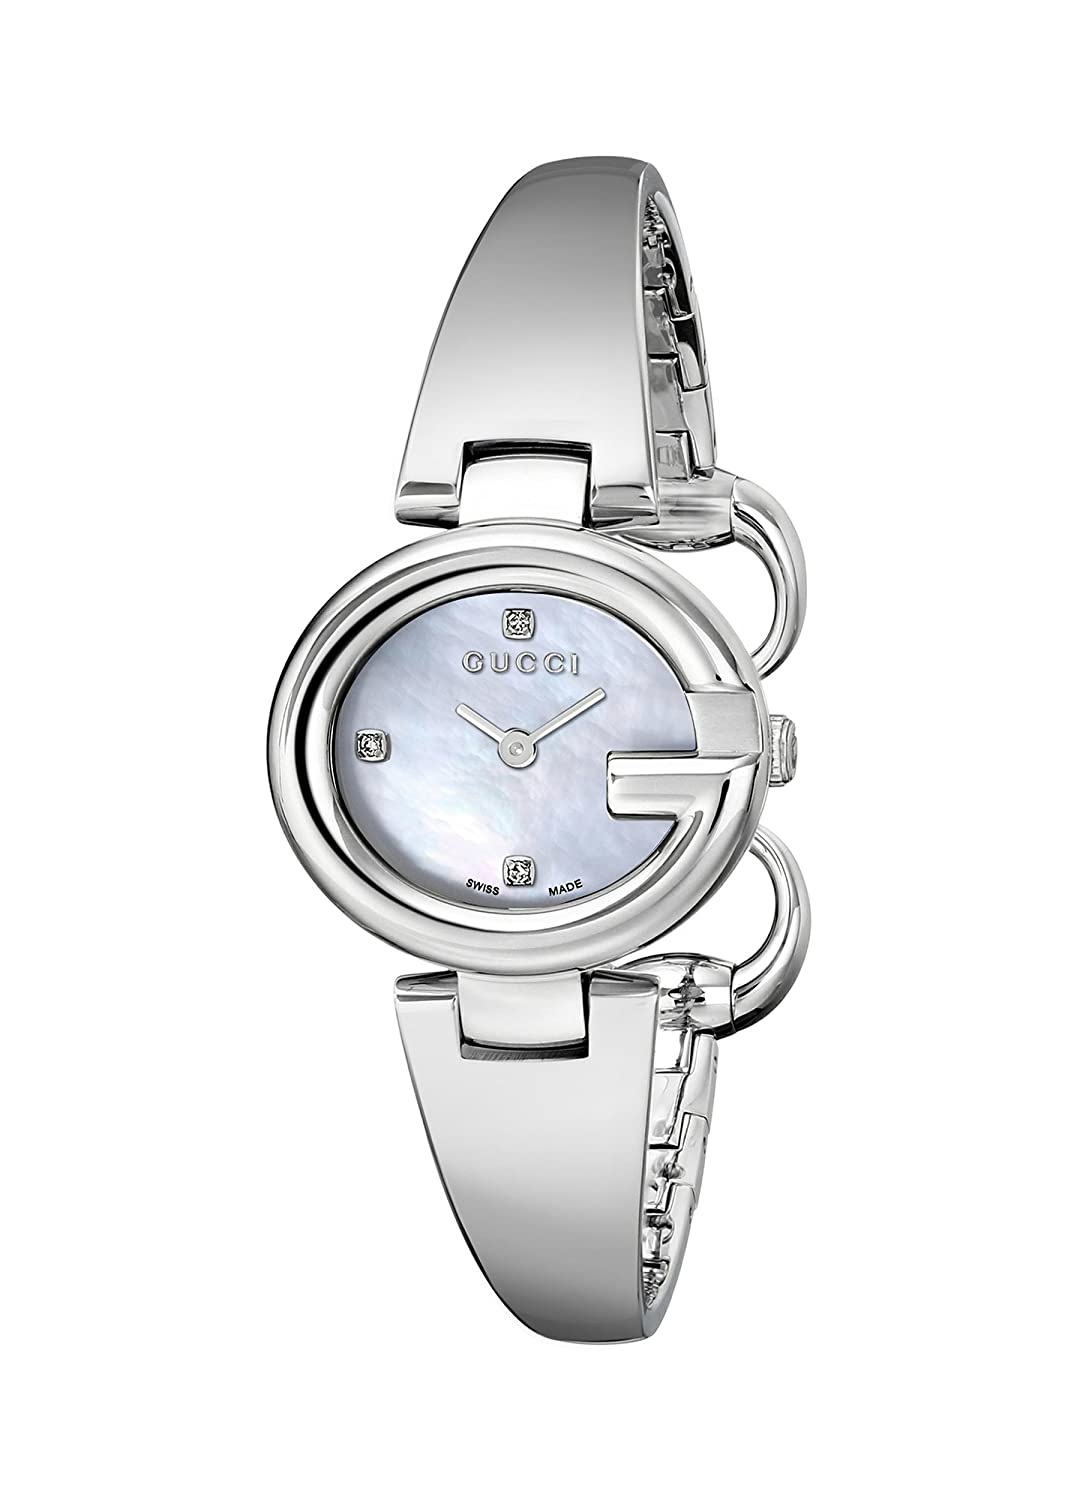 7f21a4c179d Amazon.com  Gucci Guccissima Stainless Steel Diamond-Accented Bangle Women s  Watch(Model YA134504)  Watches